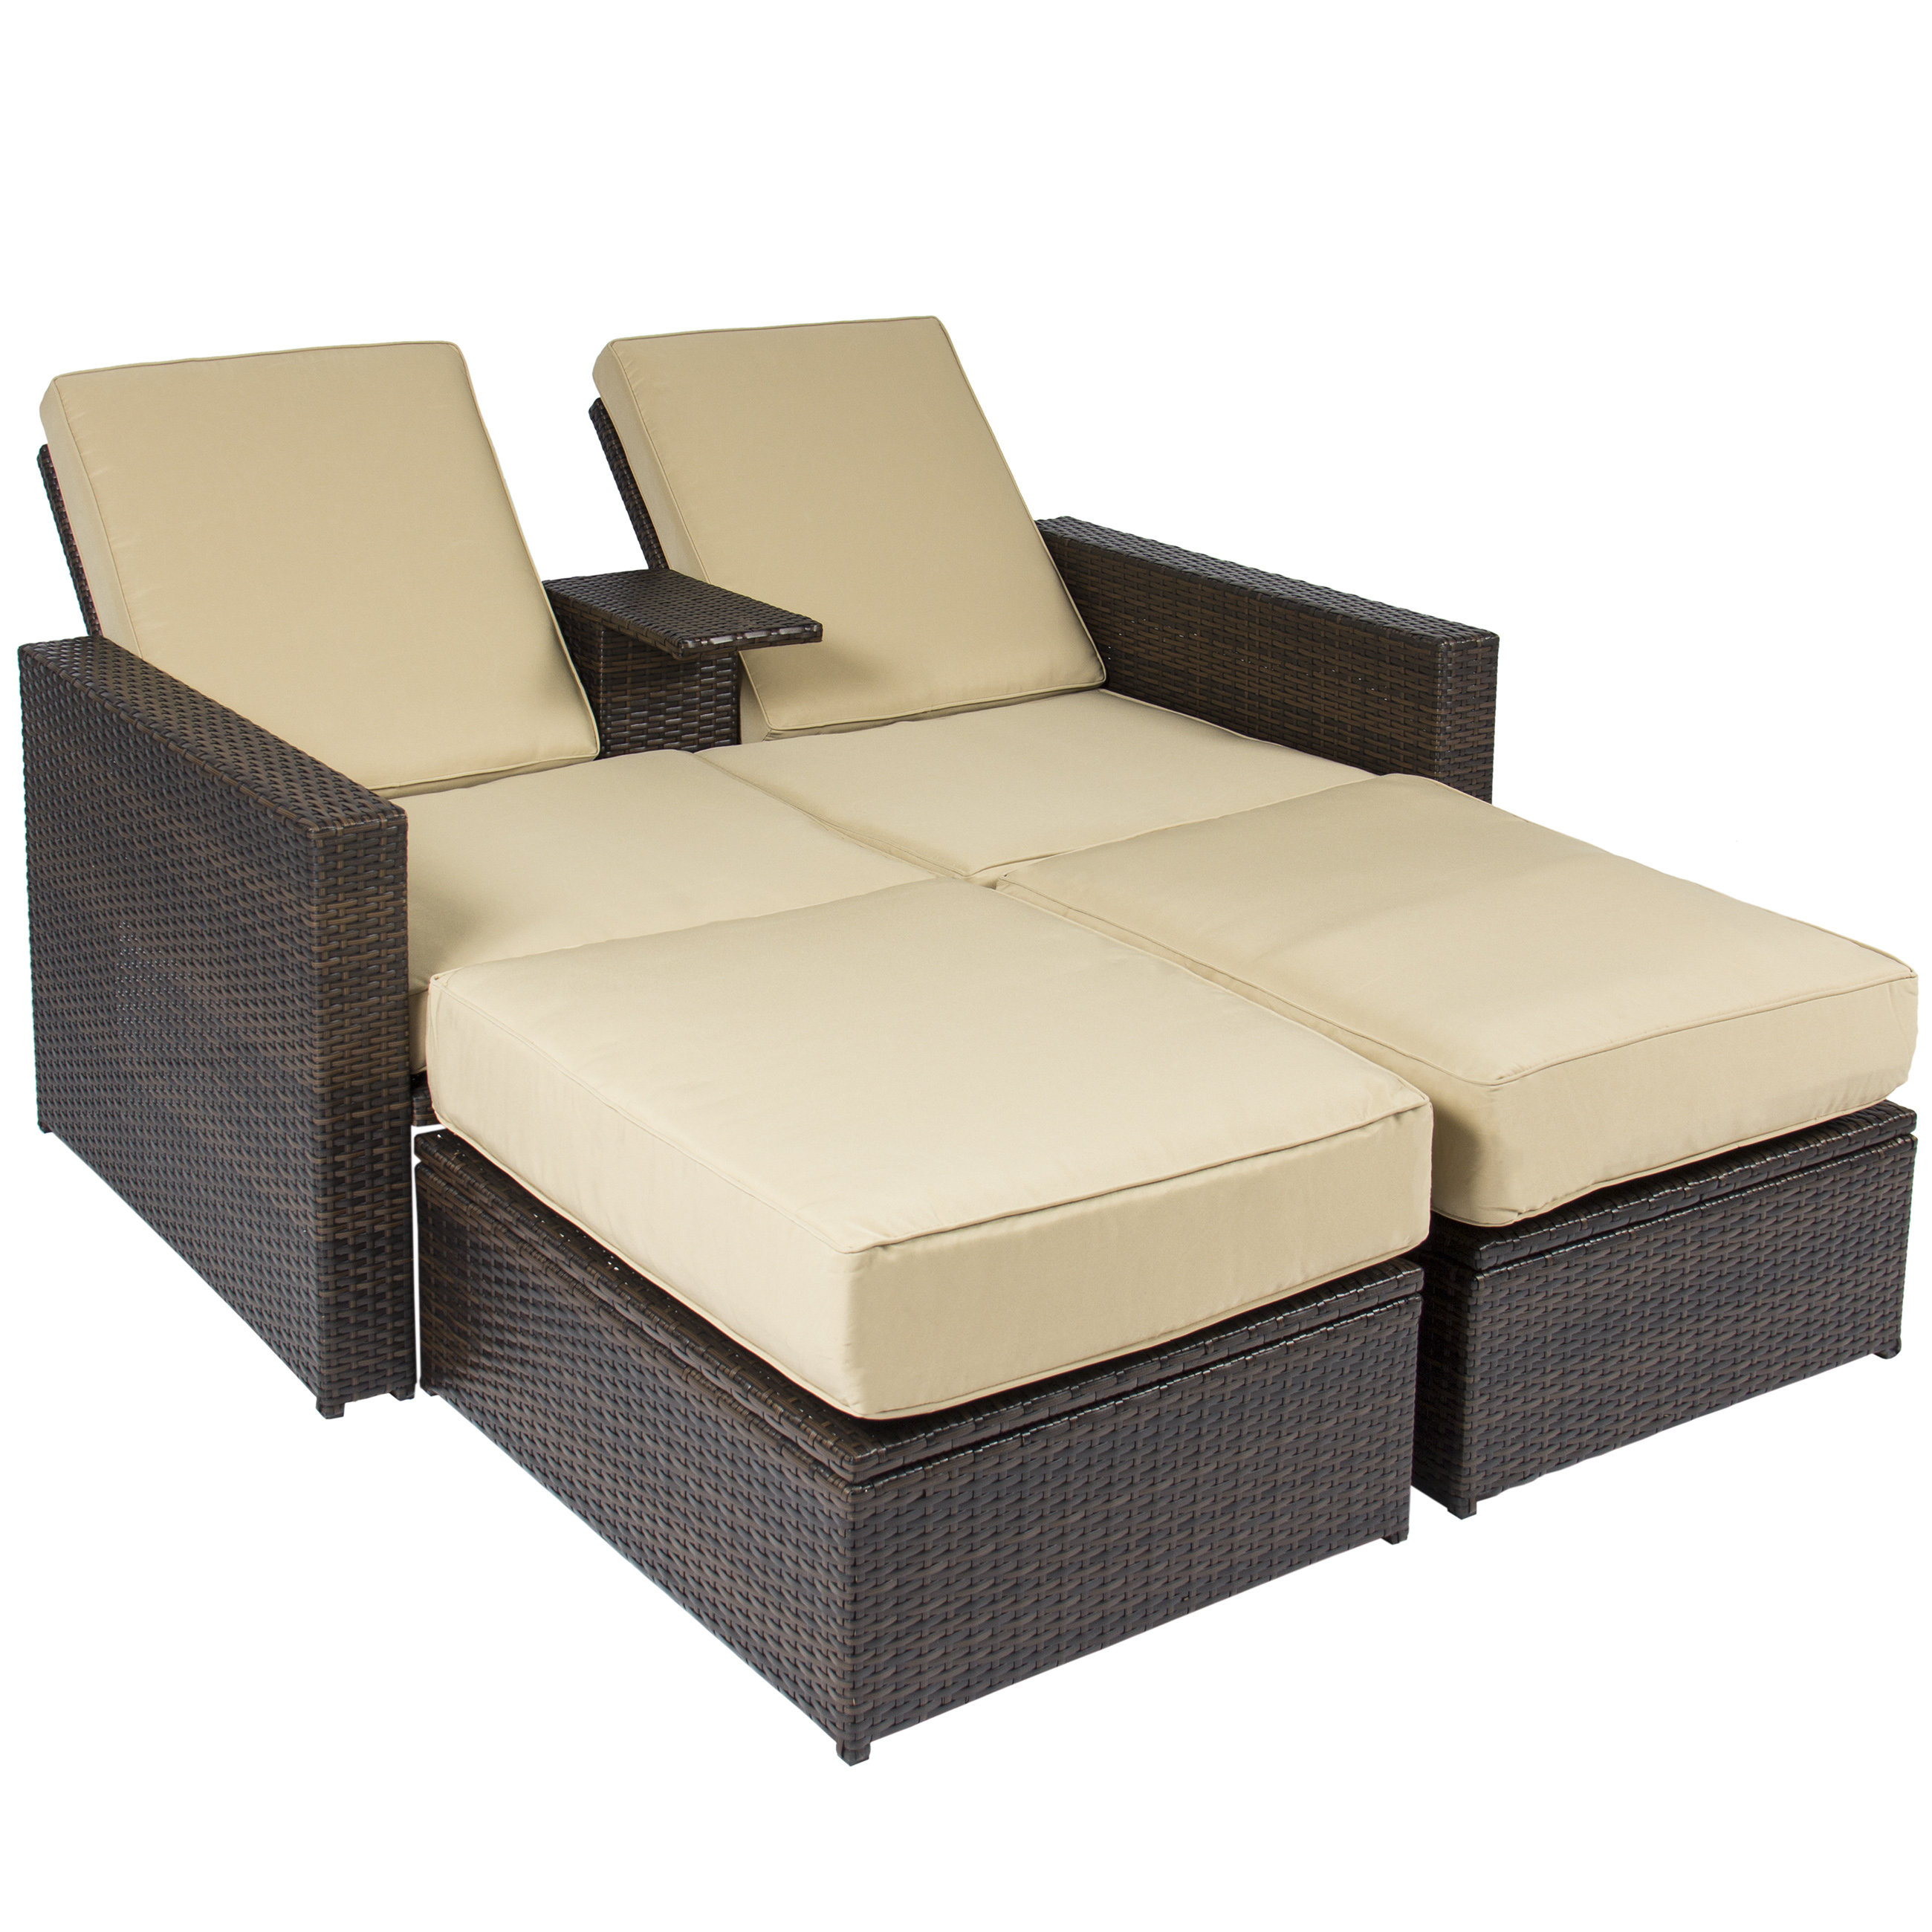 Outdoor 3pc Rattan Wicker Patio Love Seat Lounge Chair